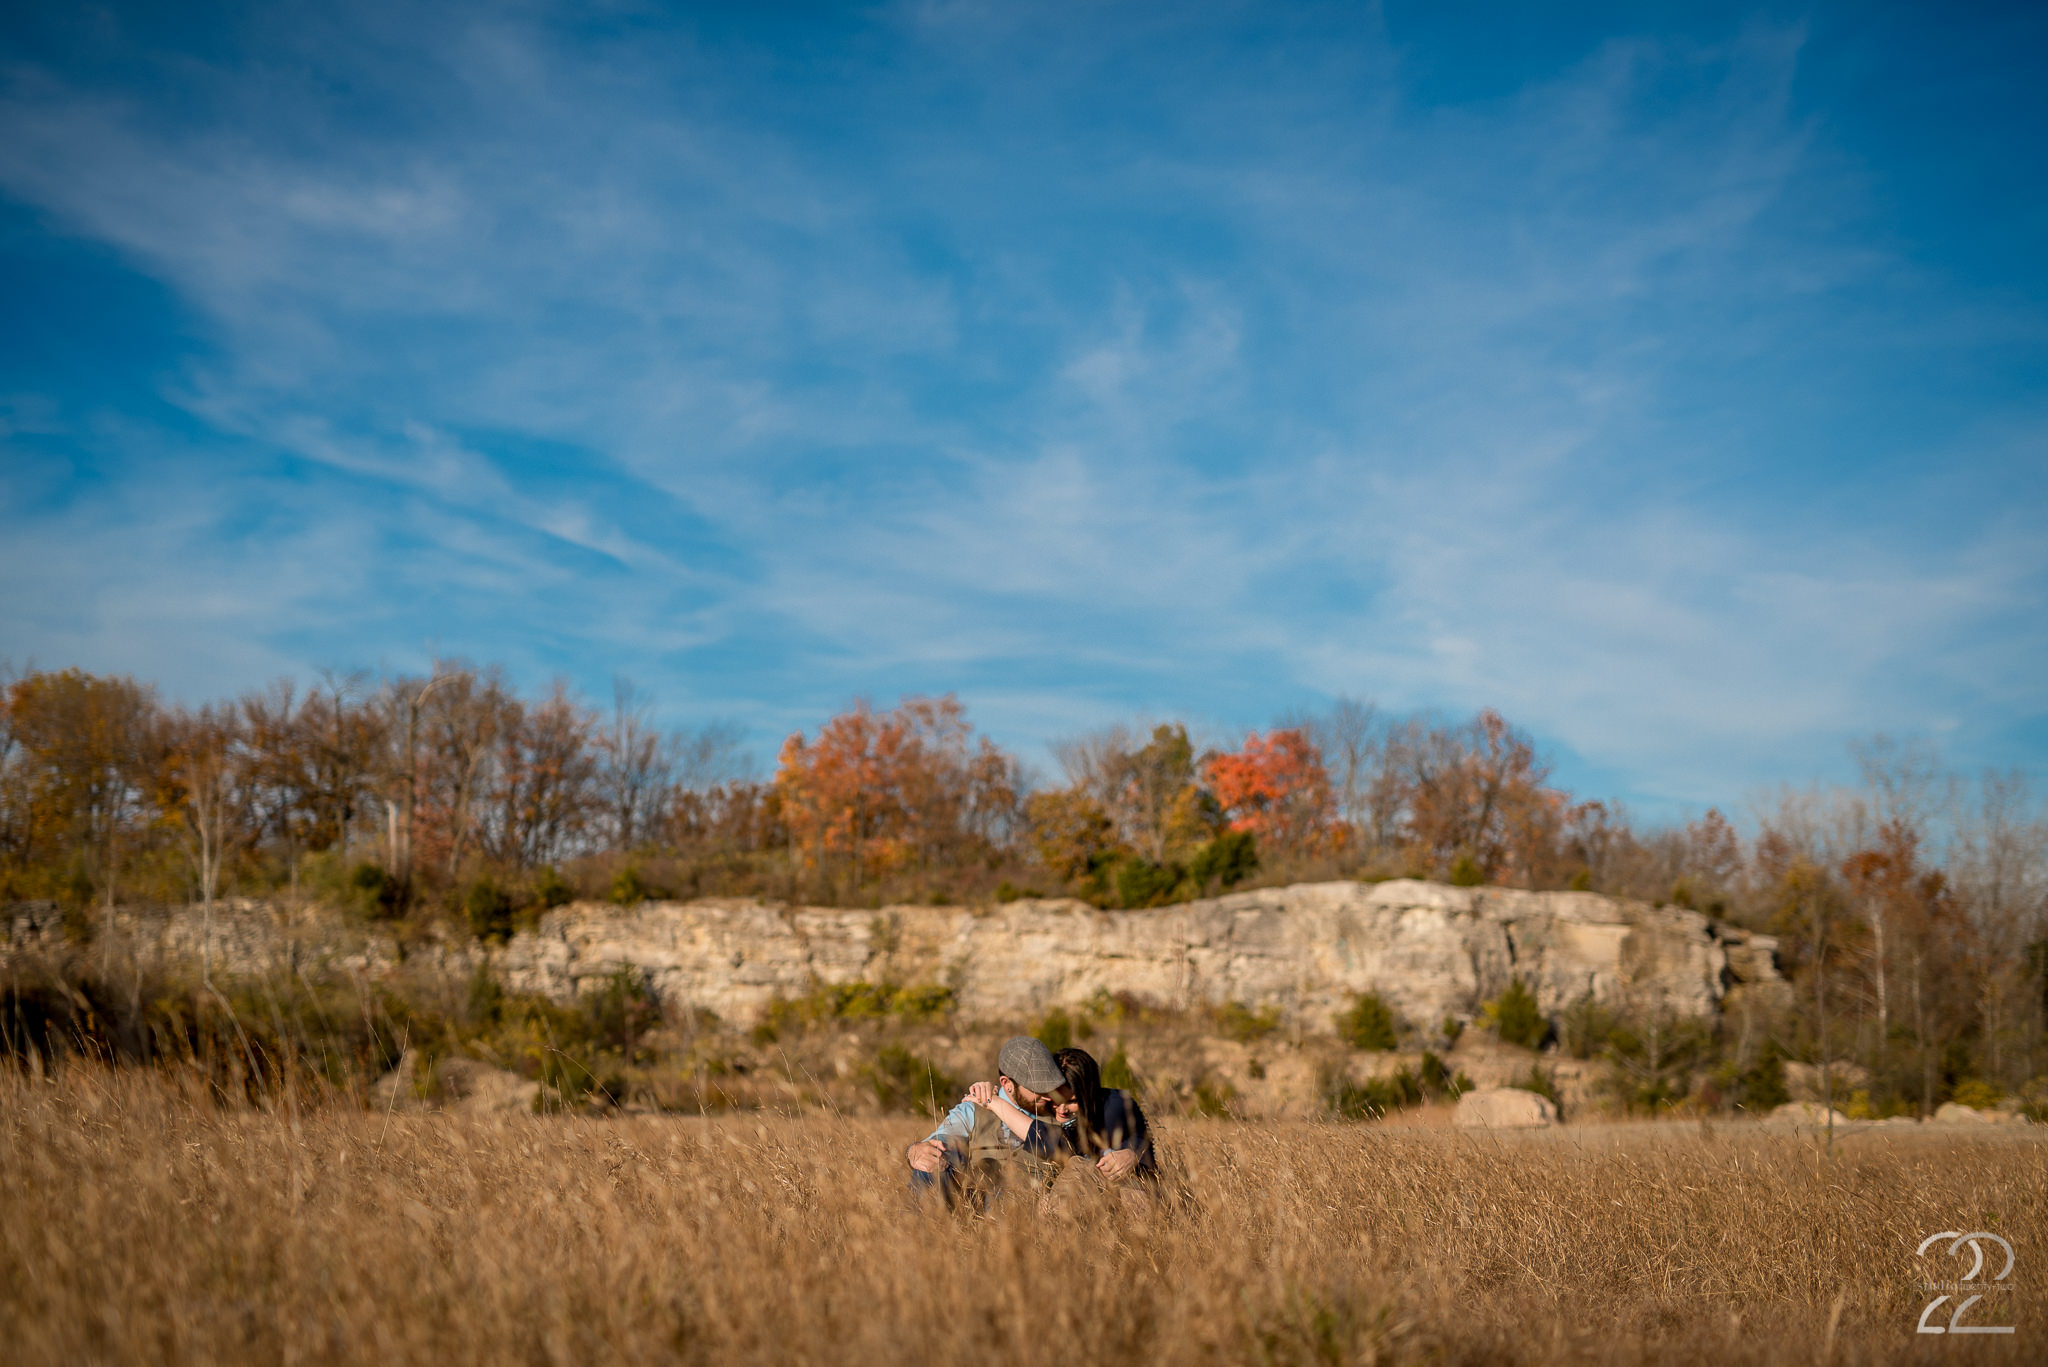 Man and woman embrace in tall grass in autumn, with a cliff and blue sky behind them at Oakes Quarry Park by Dayton Wedding Photographer Studio 22 Photography